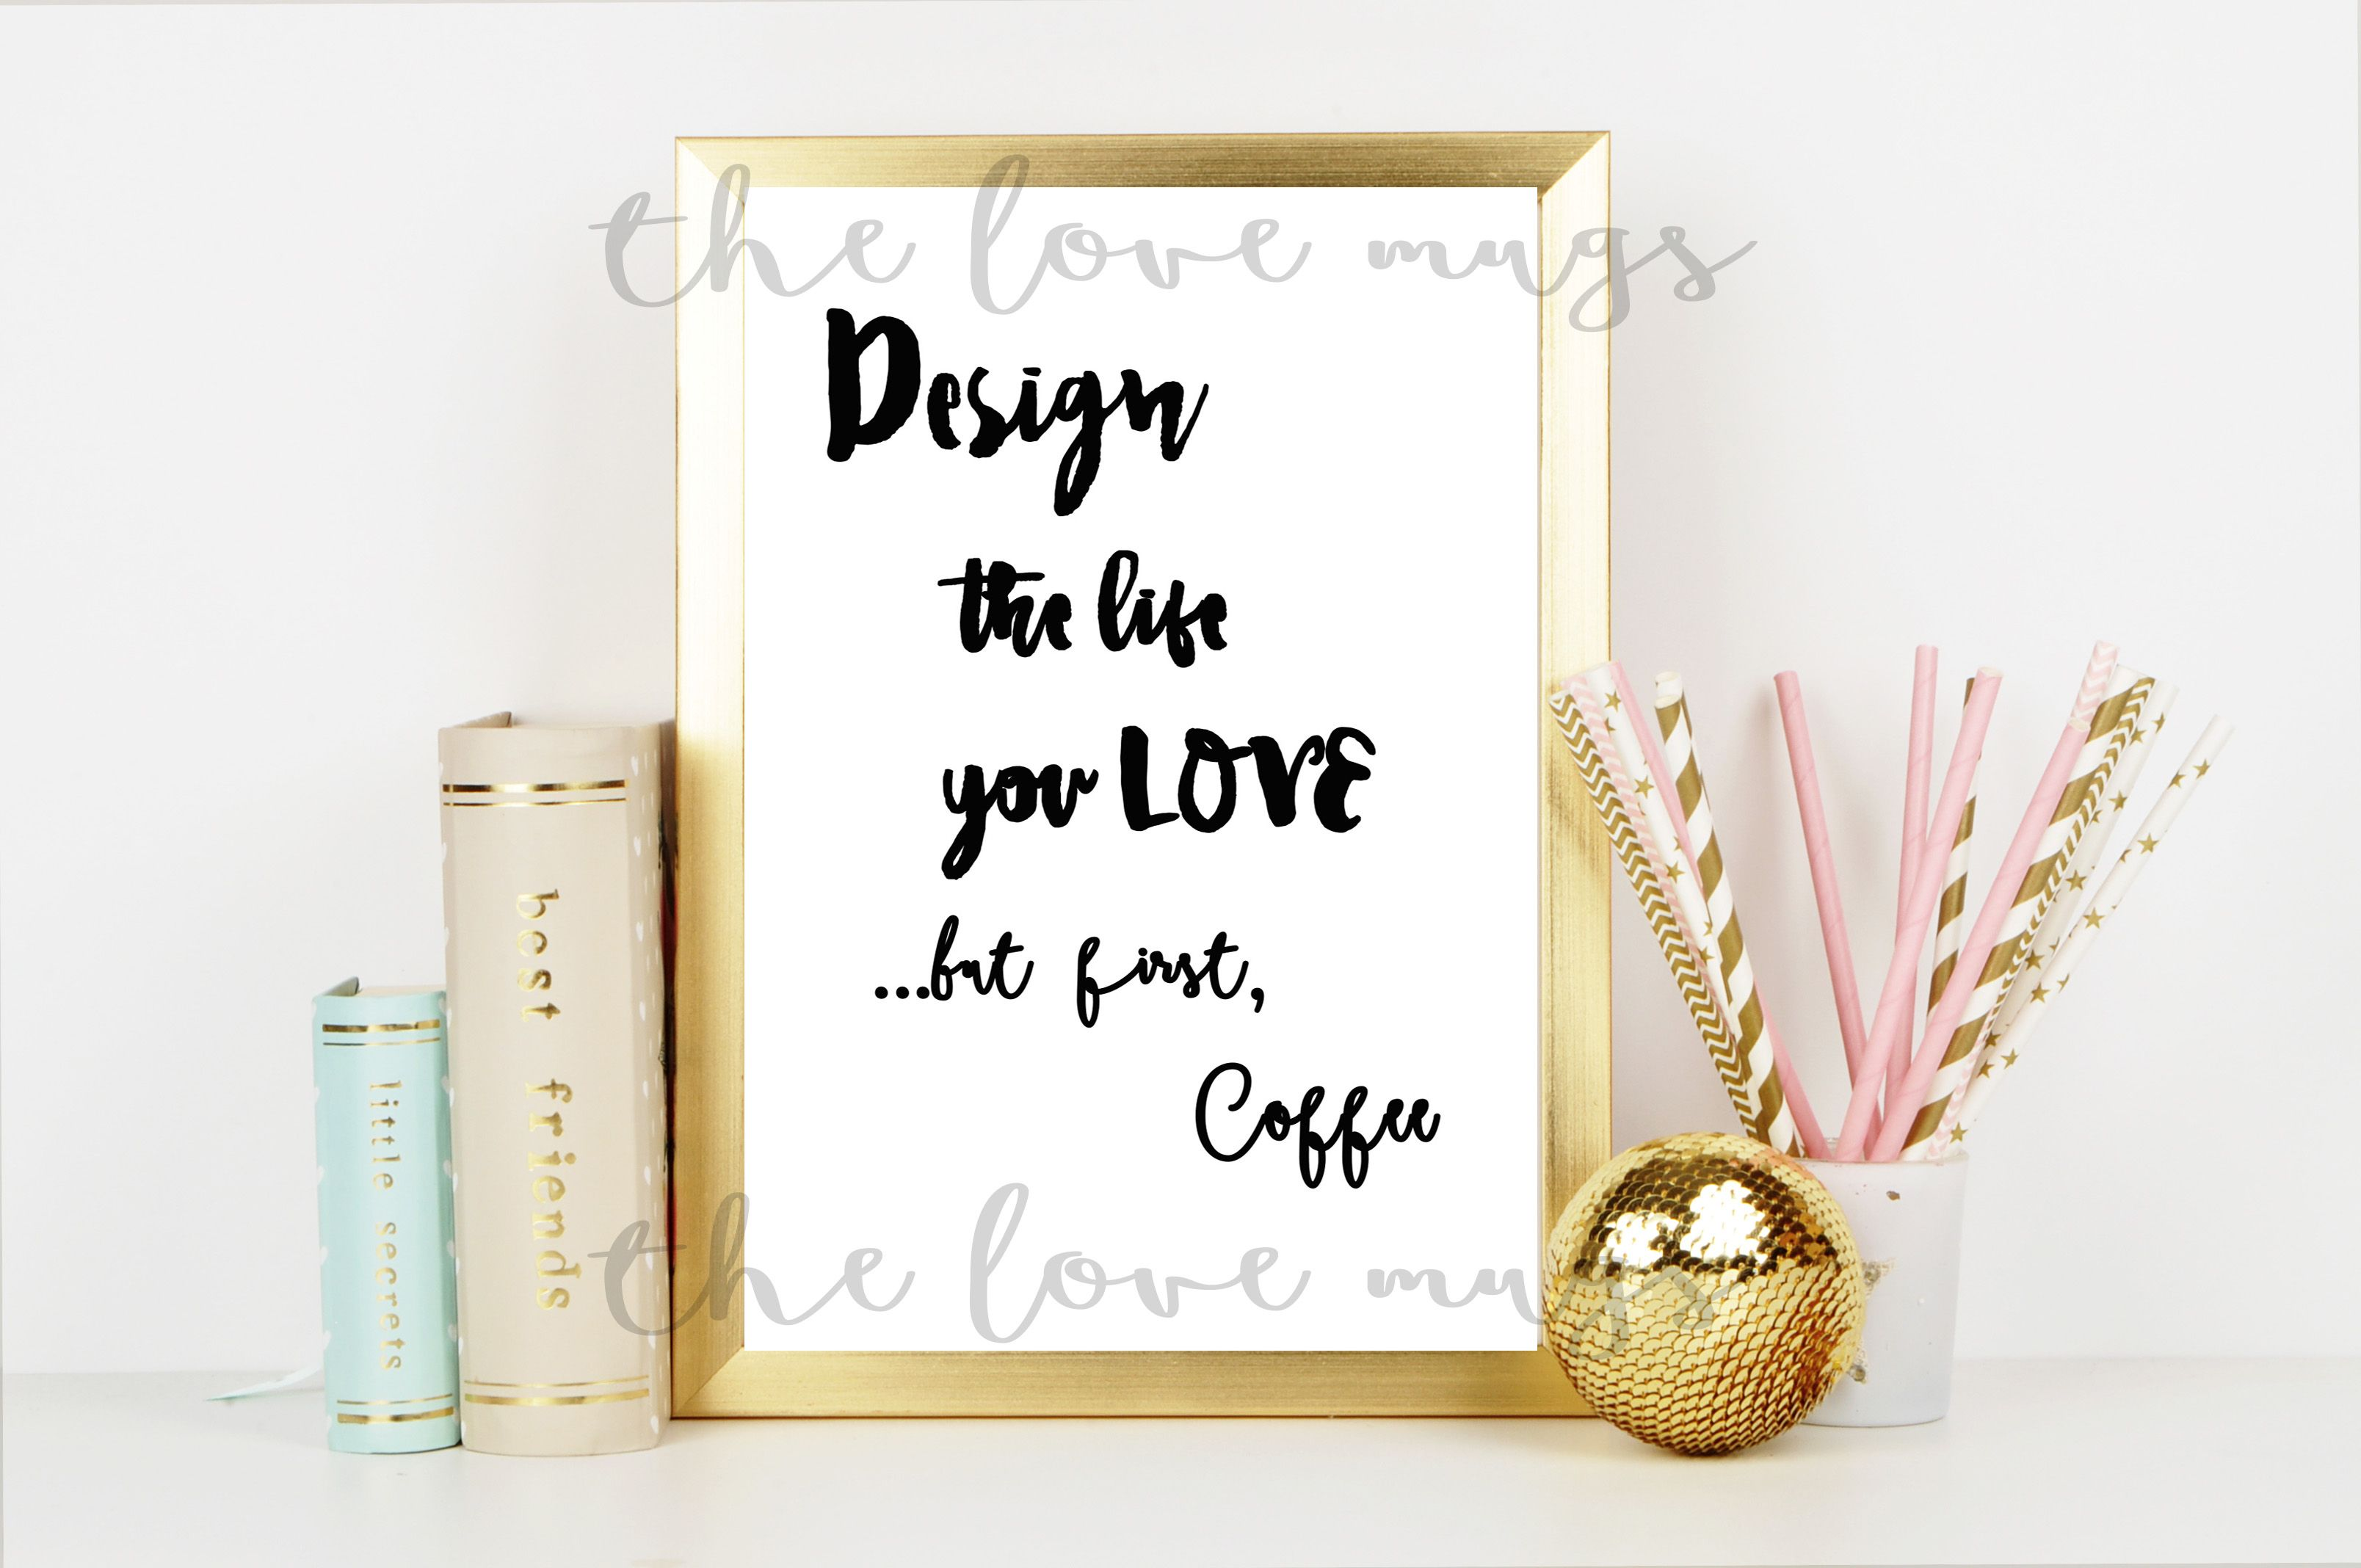 Free Giveaway Print Art. Go to www.thelovemugs.com to enter and every single person will be emailed this printable art by April 18th 2016! Hurry, limited time only. Retails for $25.00